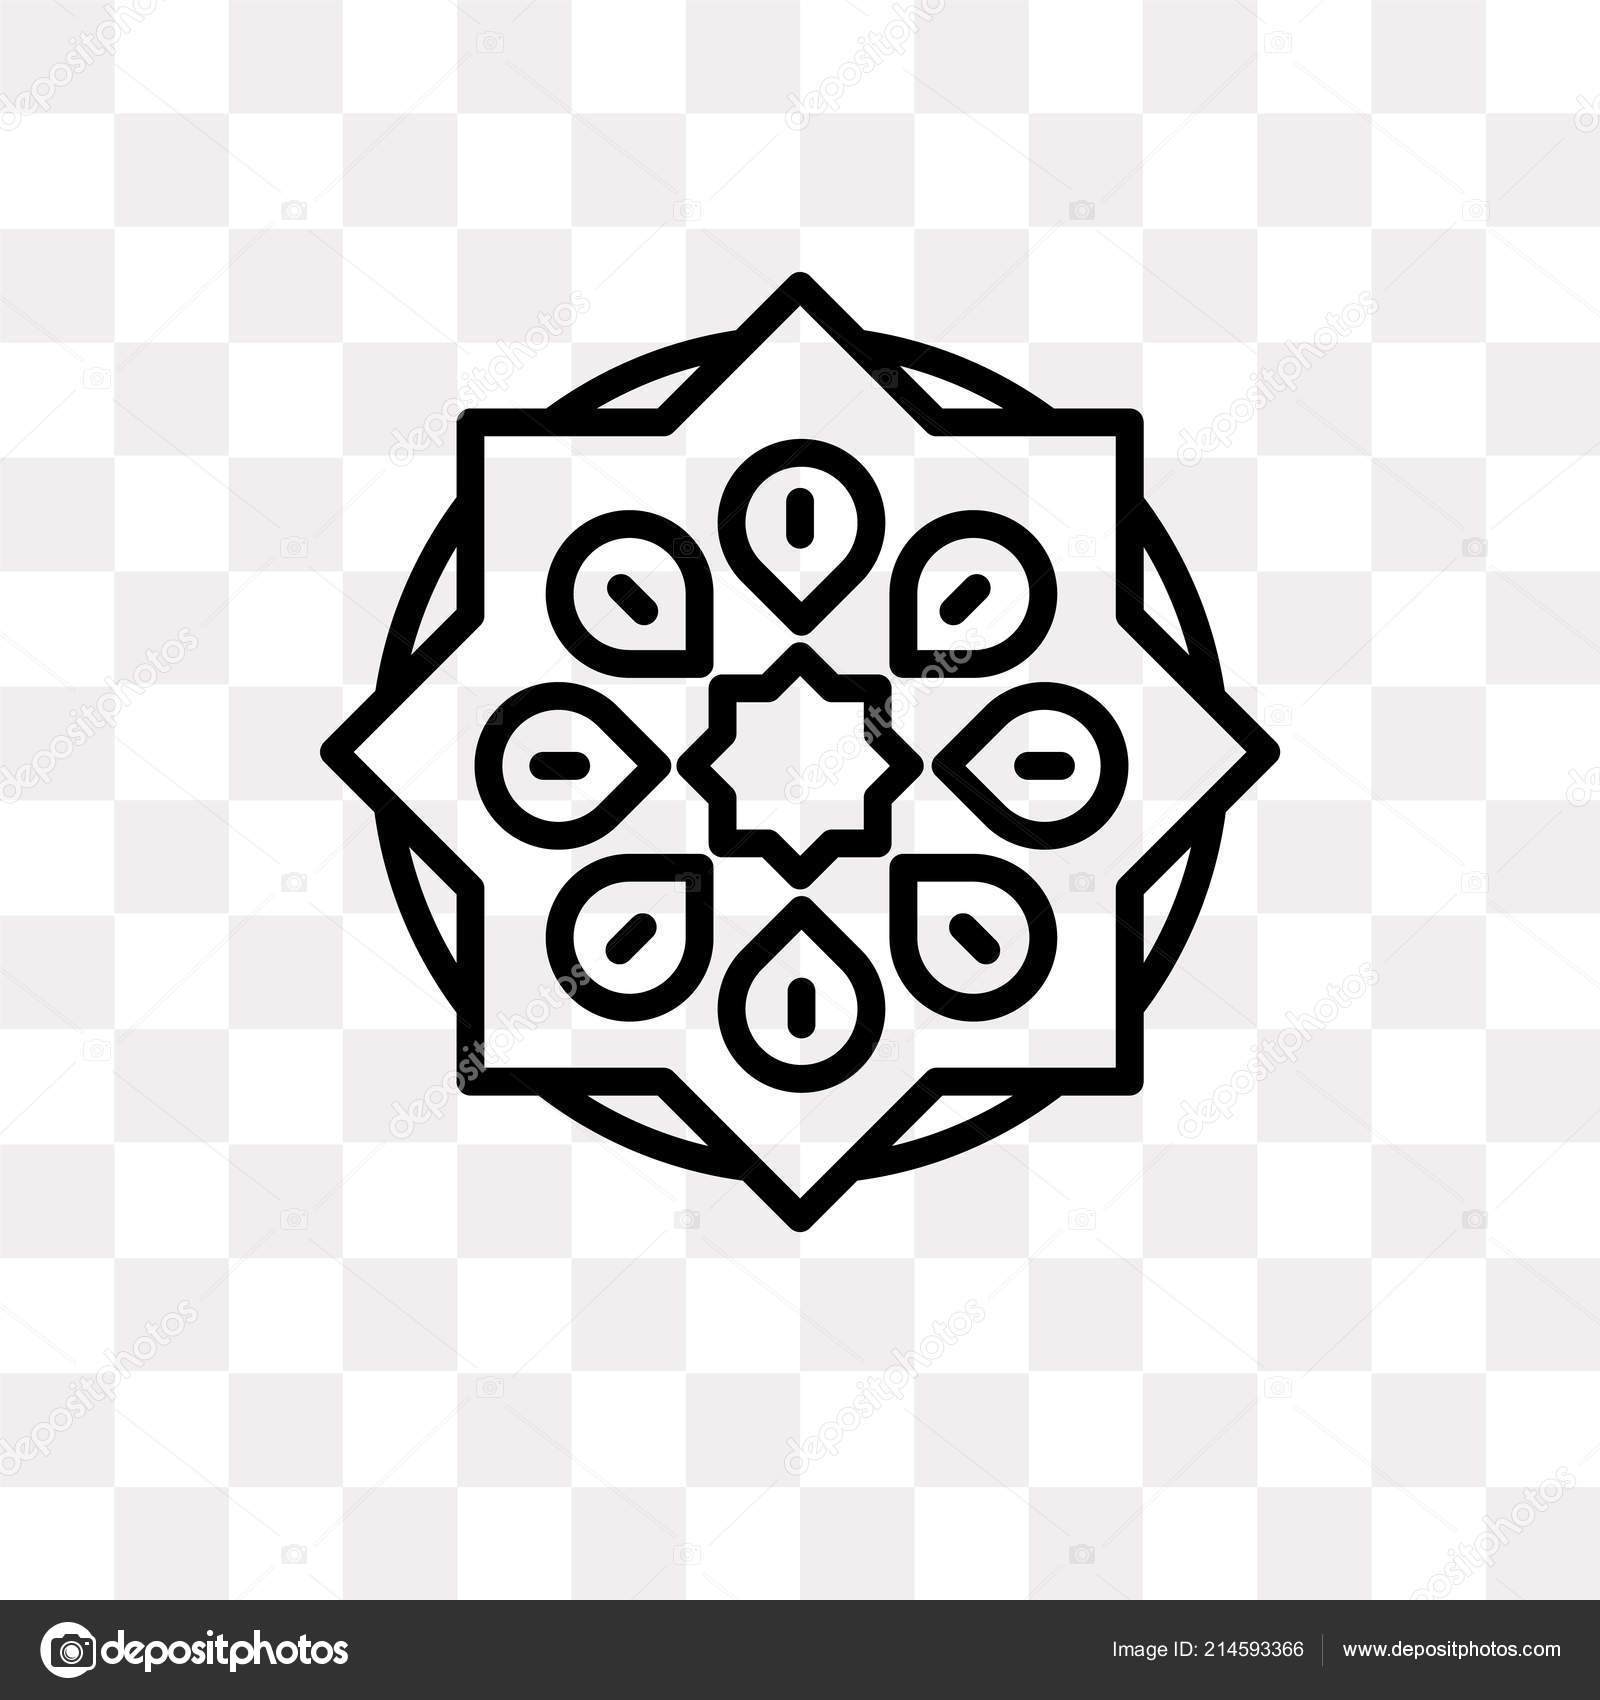 islamic shape png islamic art vector icon isolated transparent background islamic art logo stock vector c mmvector 214593366 https depositphotos com 214593366 stock illustration islamic art vector icon isolated html